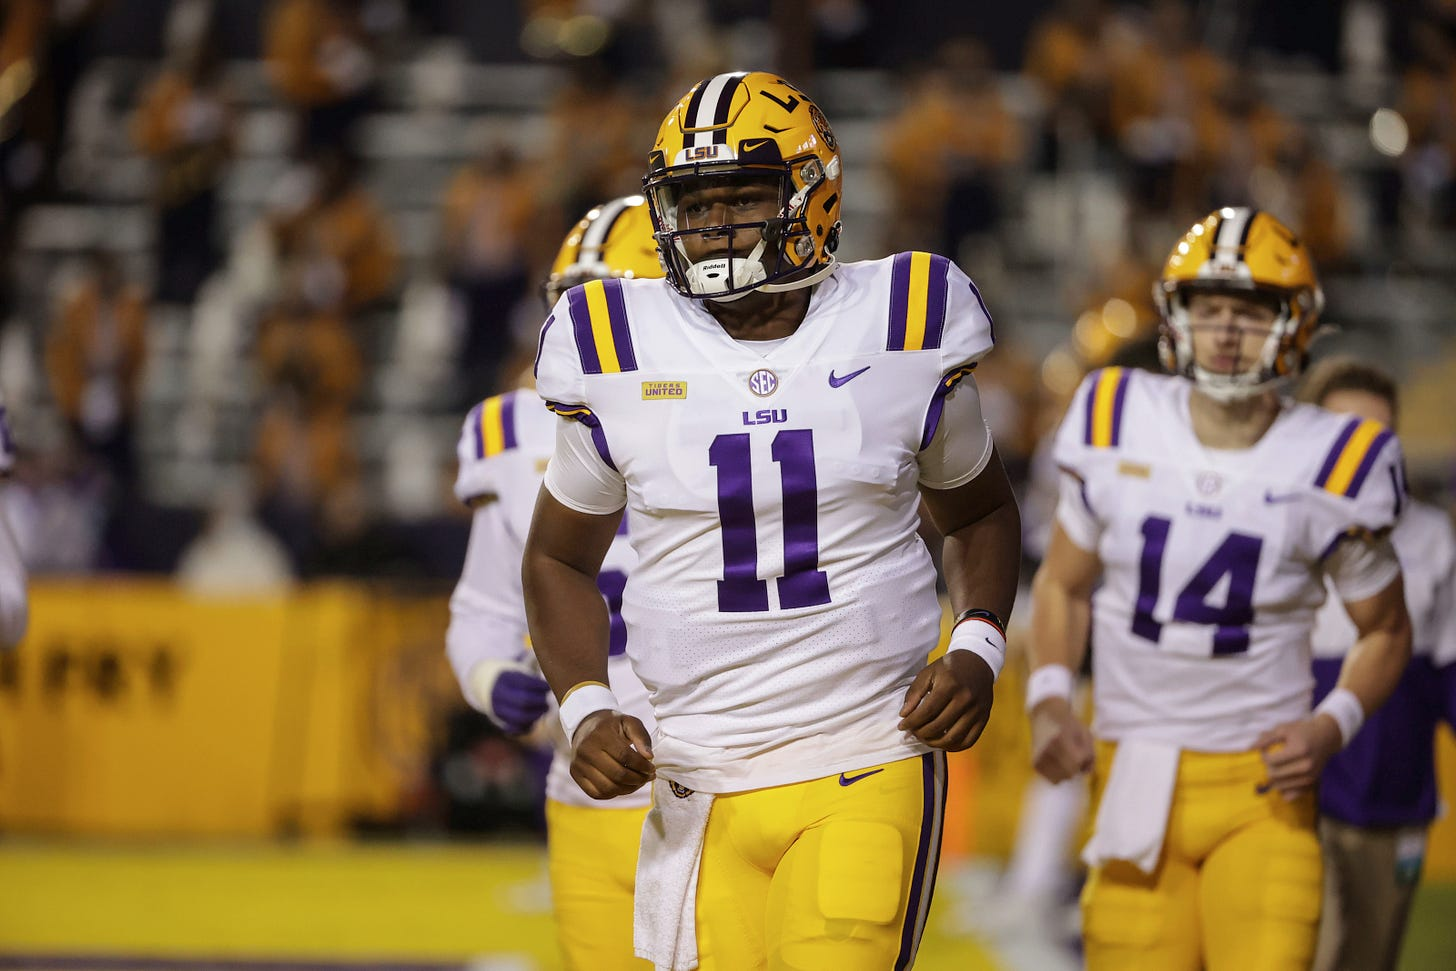 LSU Football: How TJ Finley took the high road in exit from Baton Rouge